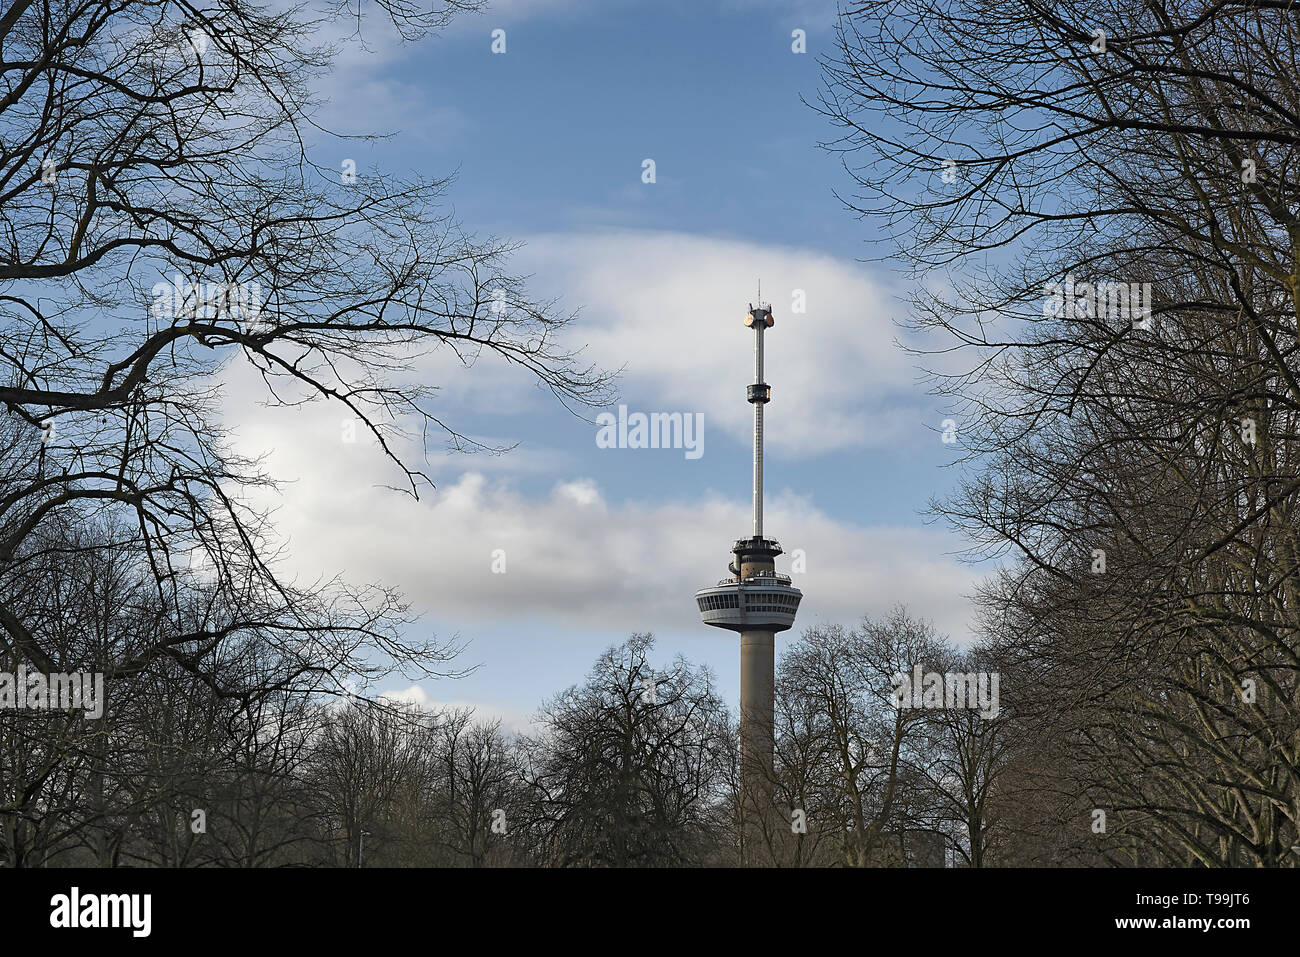 Euromast in the city centre of Rotterdam - Stock Image